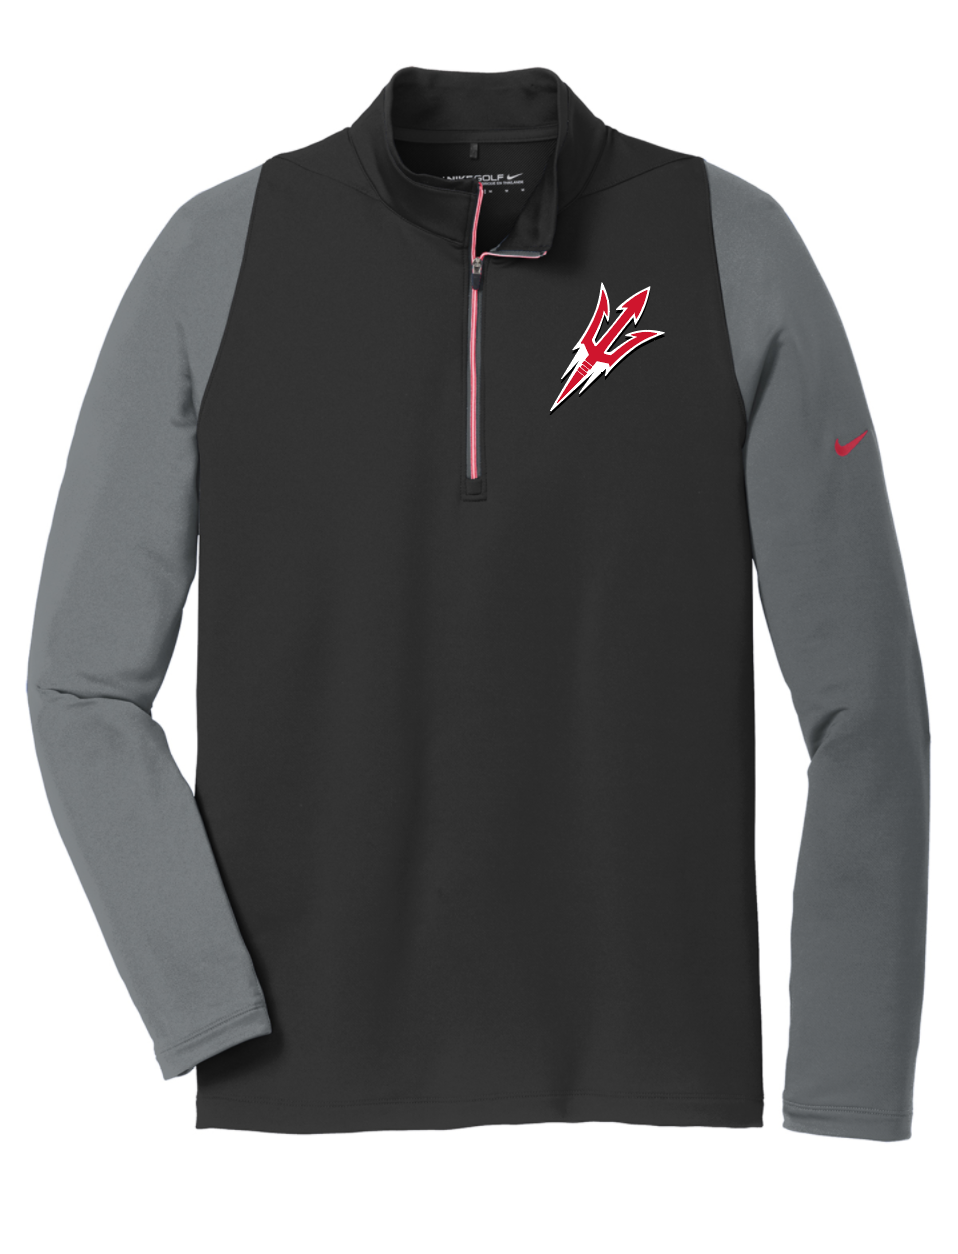 Tippecanoe - Nike Dri Fit Stretch 1/2 Zip